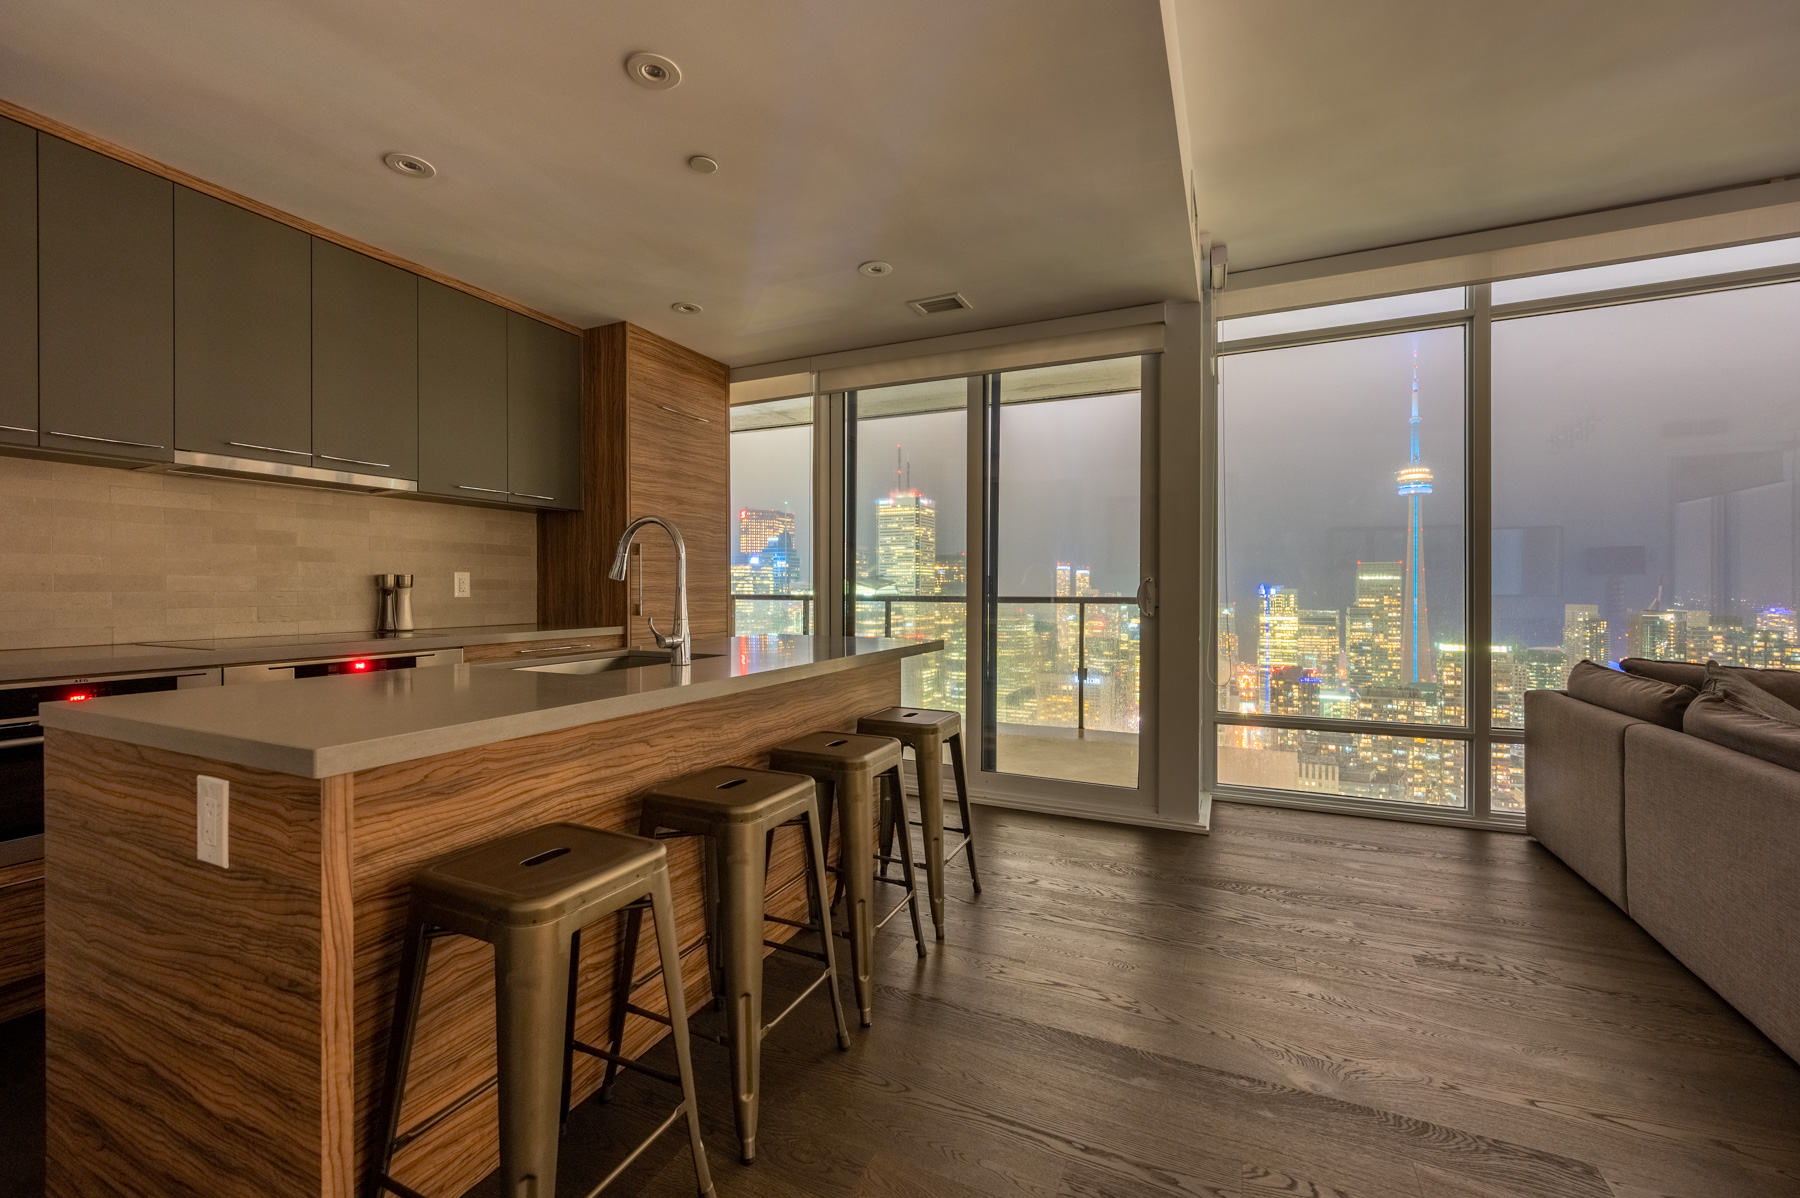 Condo dining room with view of Toronto at night.